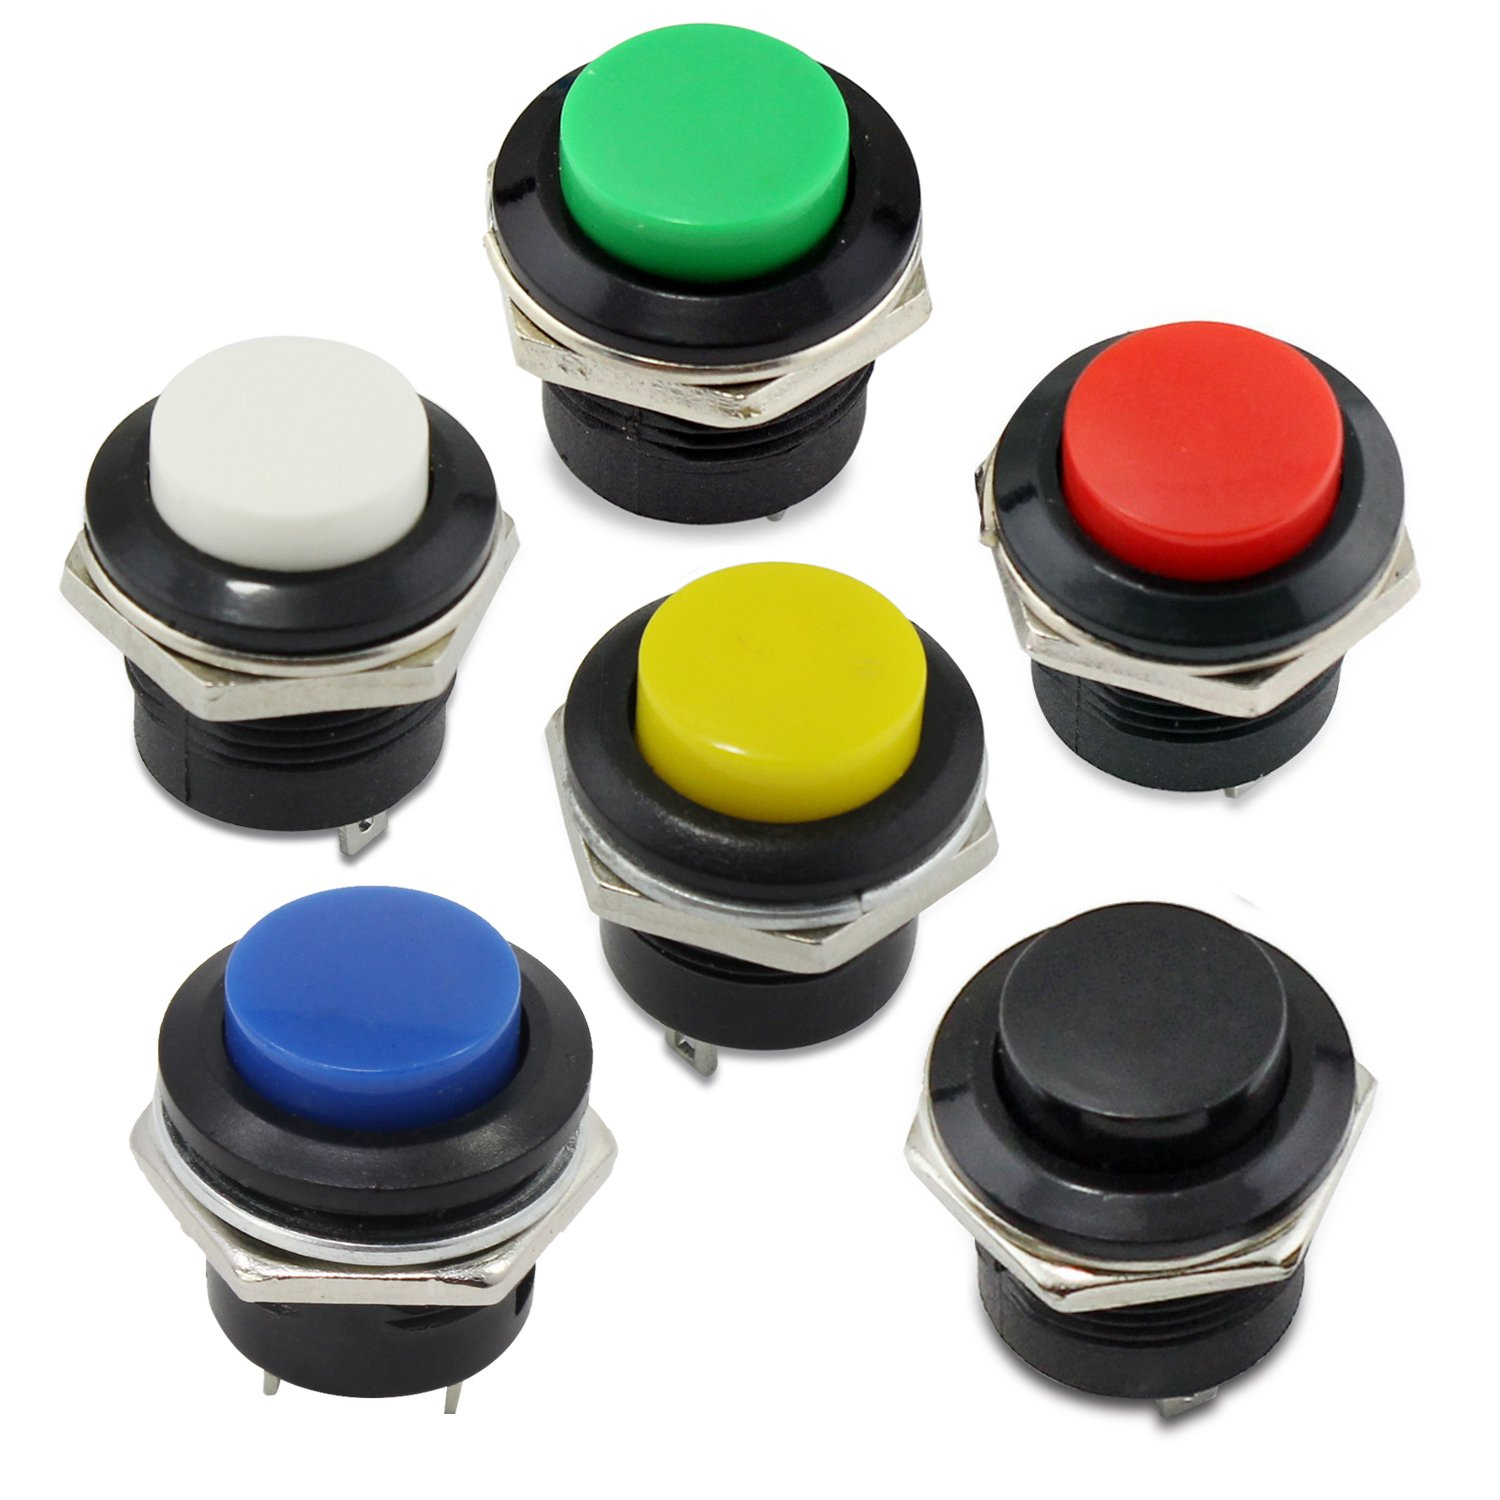 OcrAC 125V 6A AC 250V 3A Car Auto Momentary On/Off Switch Horn Switch For Car Push Round Button Switch 5pcs (White button) Ocrtech